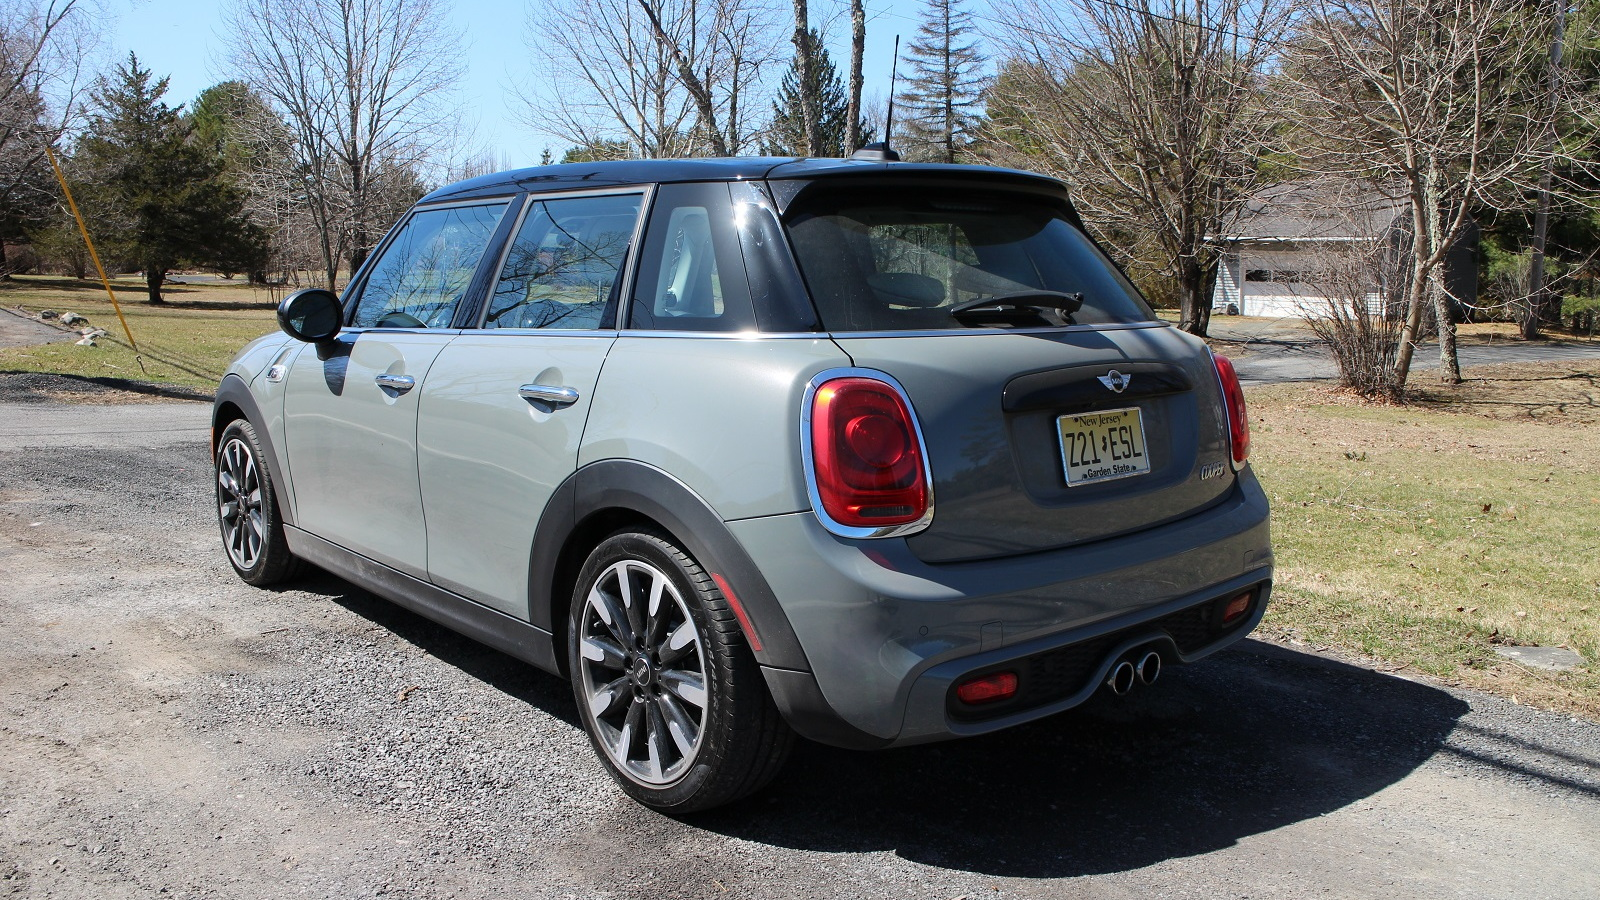 2015 Mini Cooper S Hardtop 4 Door Gas Mileage Review